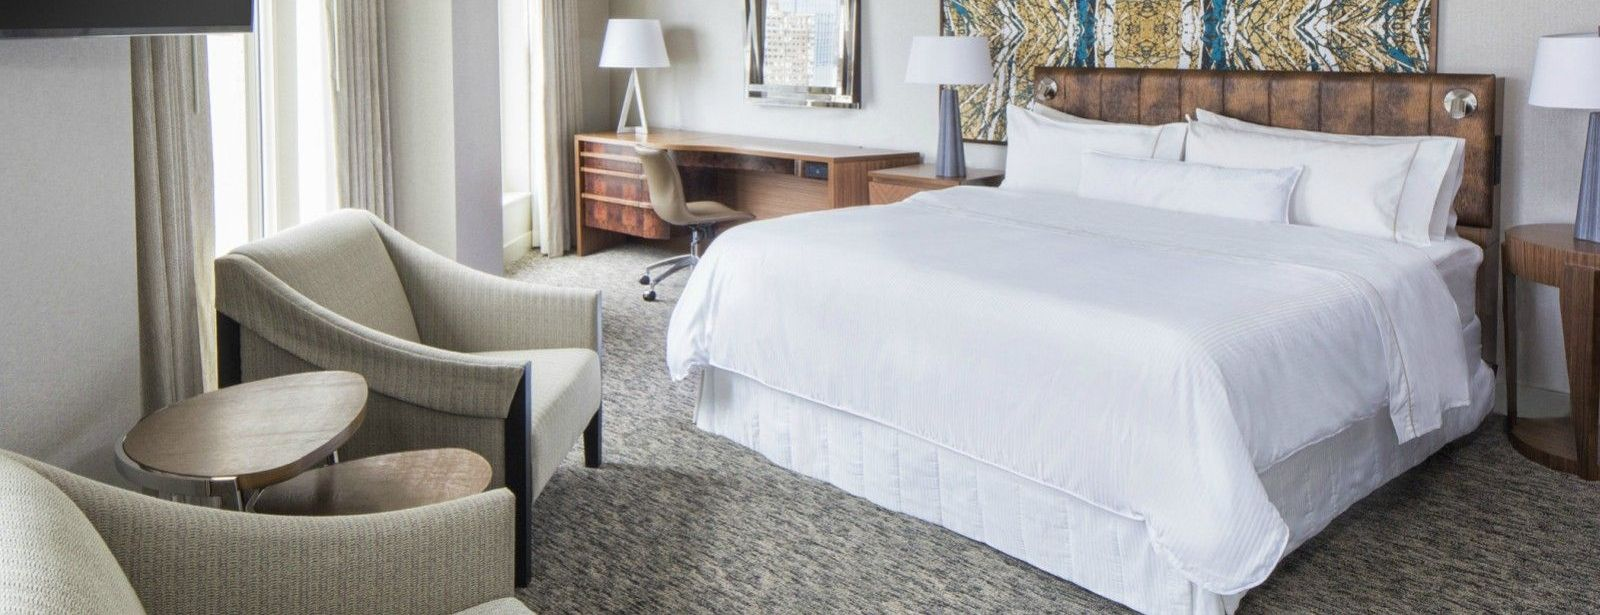 Jersey City Accommodations | Junior Suite Bed